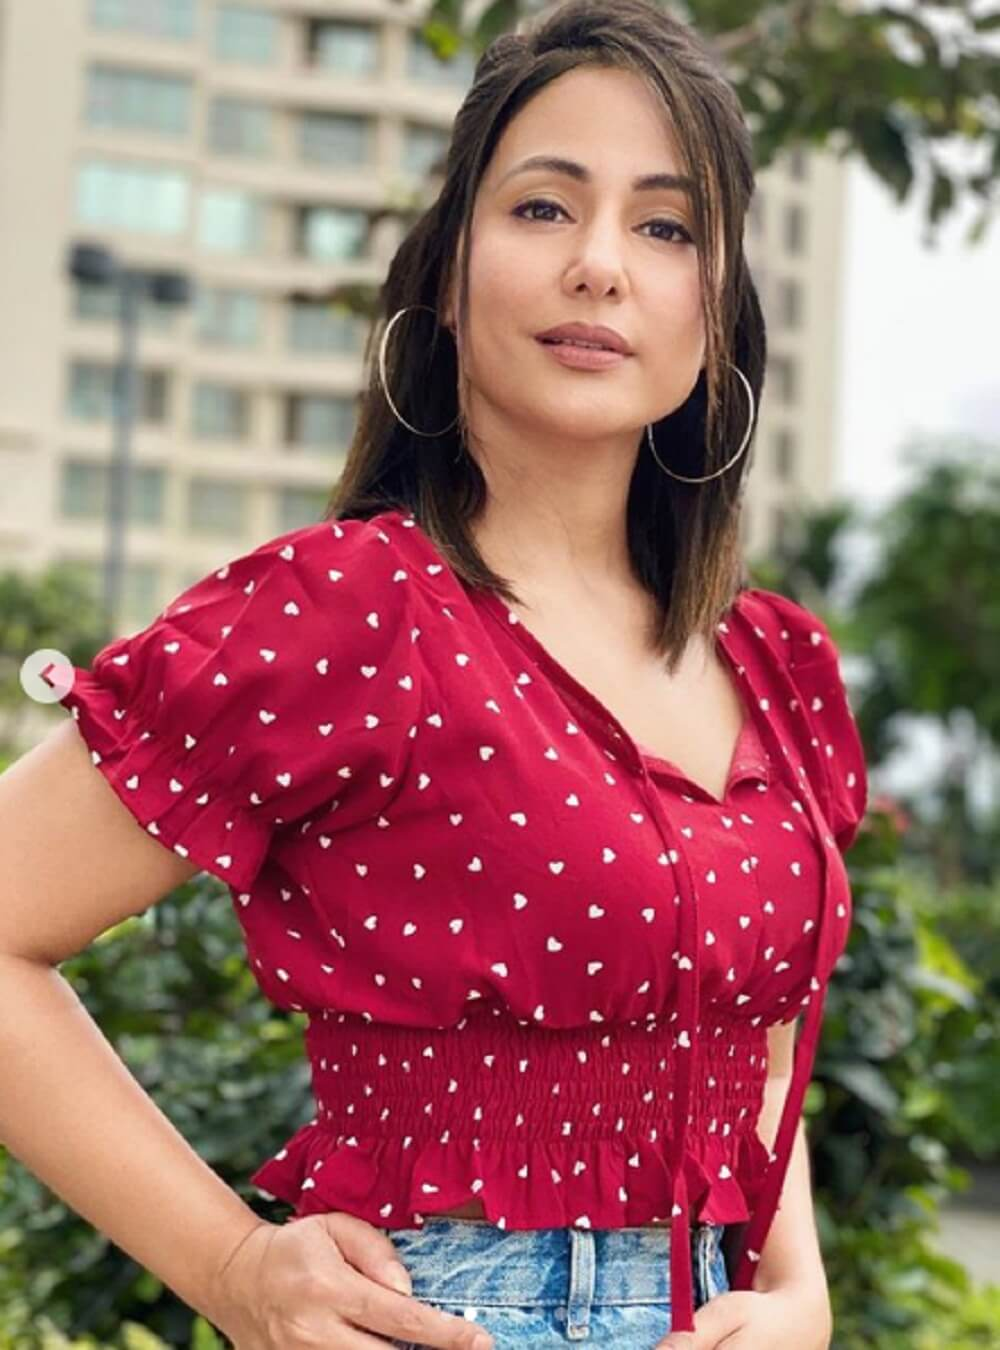 Bollywood actress Hina Khan's bold-beautiful photos rocked